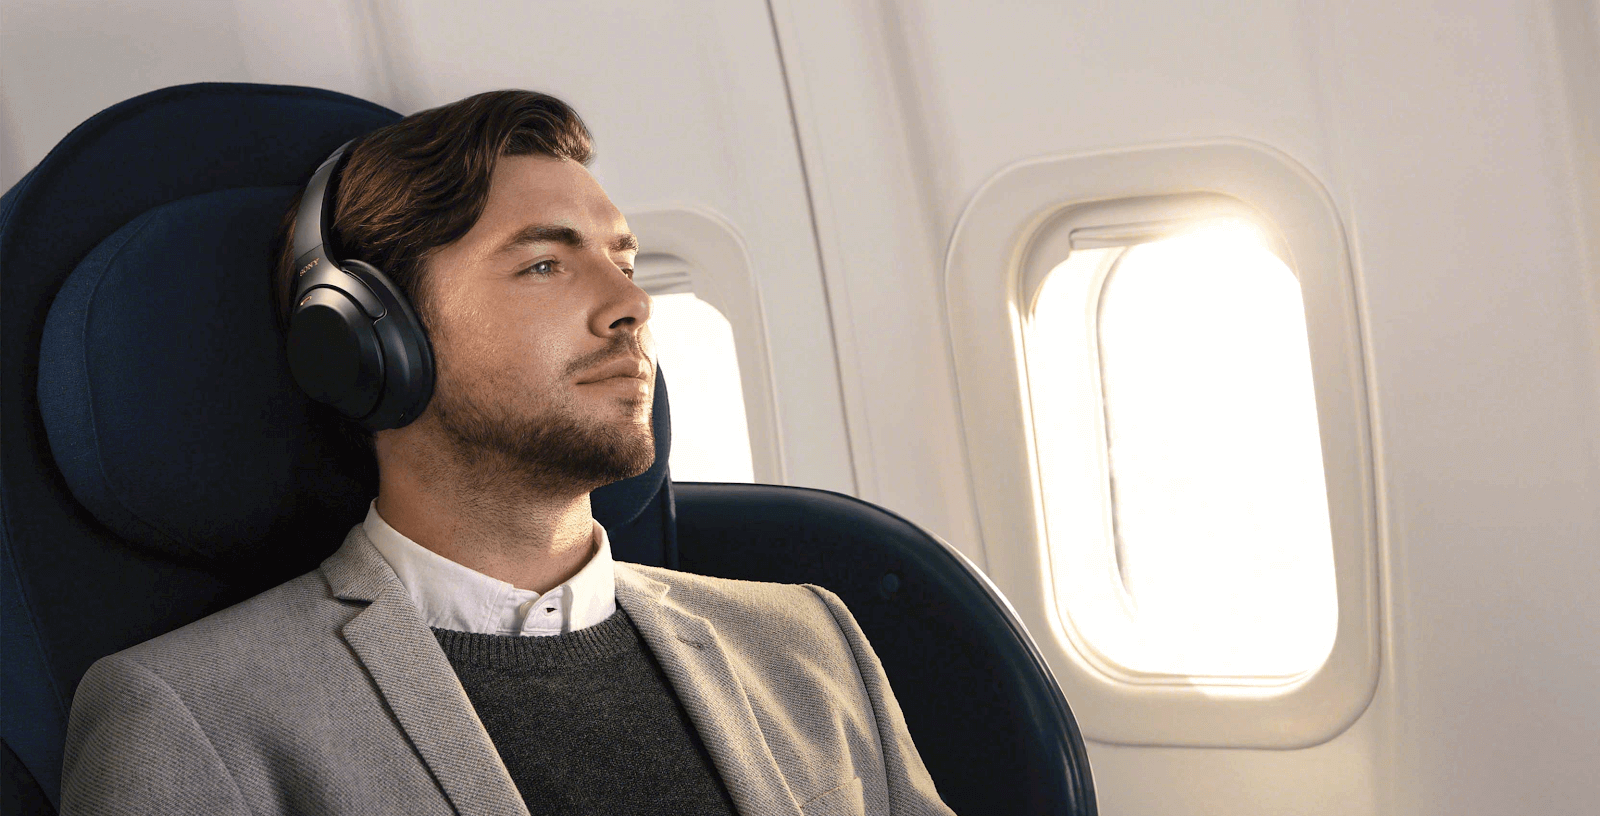 Man plane Sony WH-100XM3 Headphones